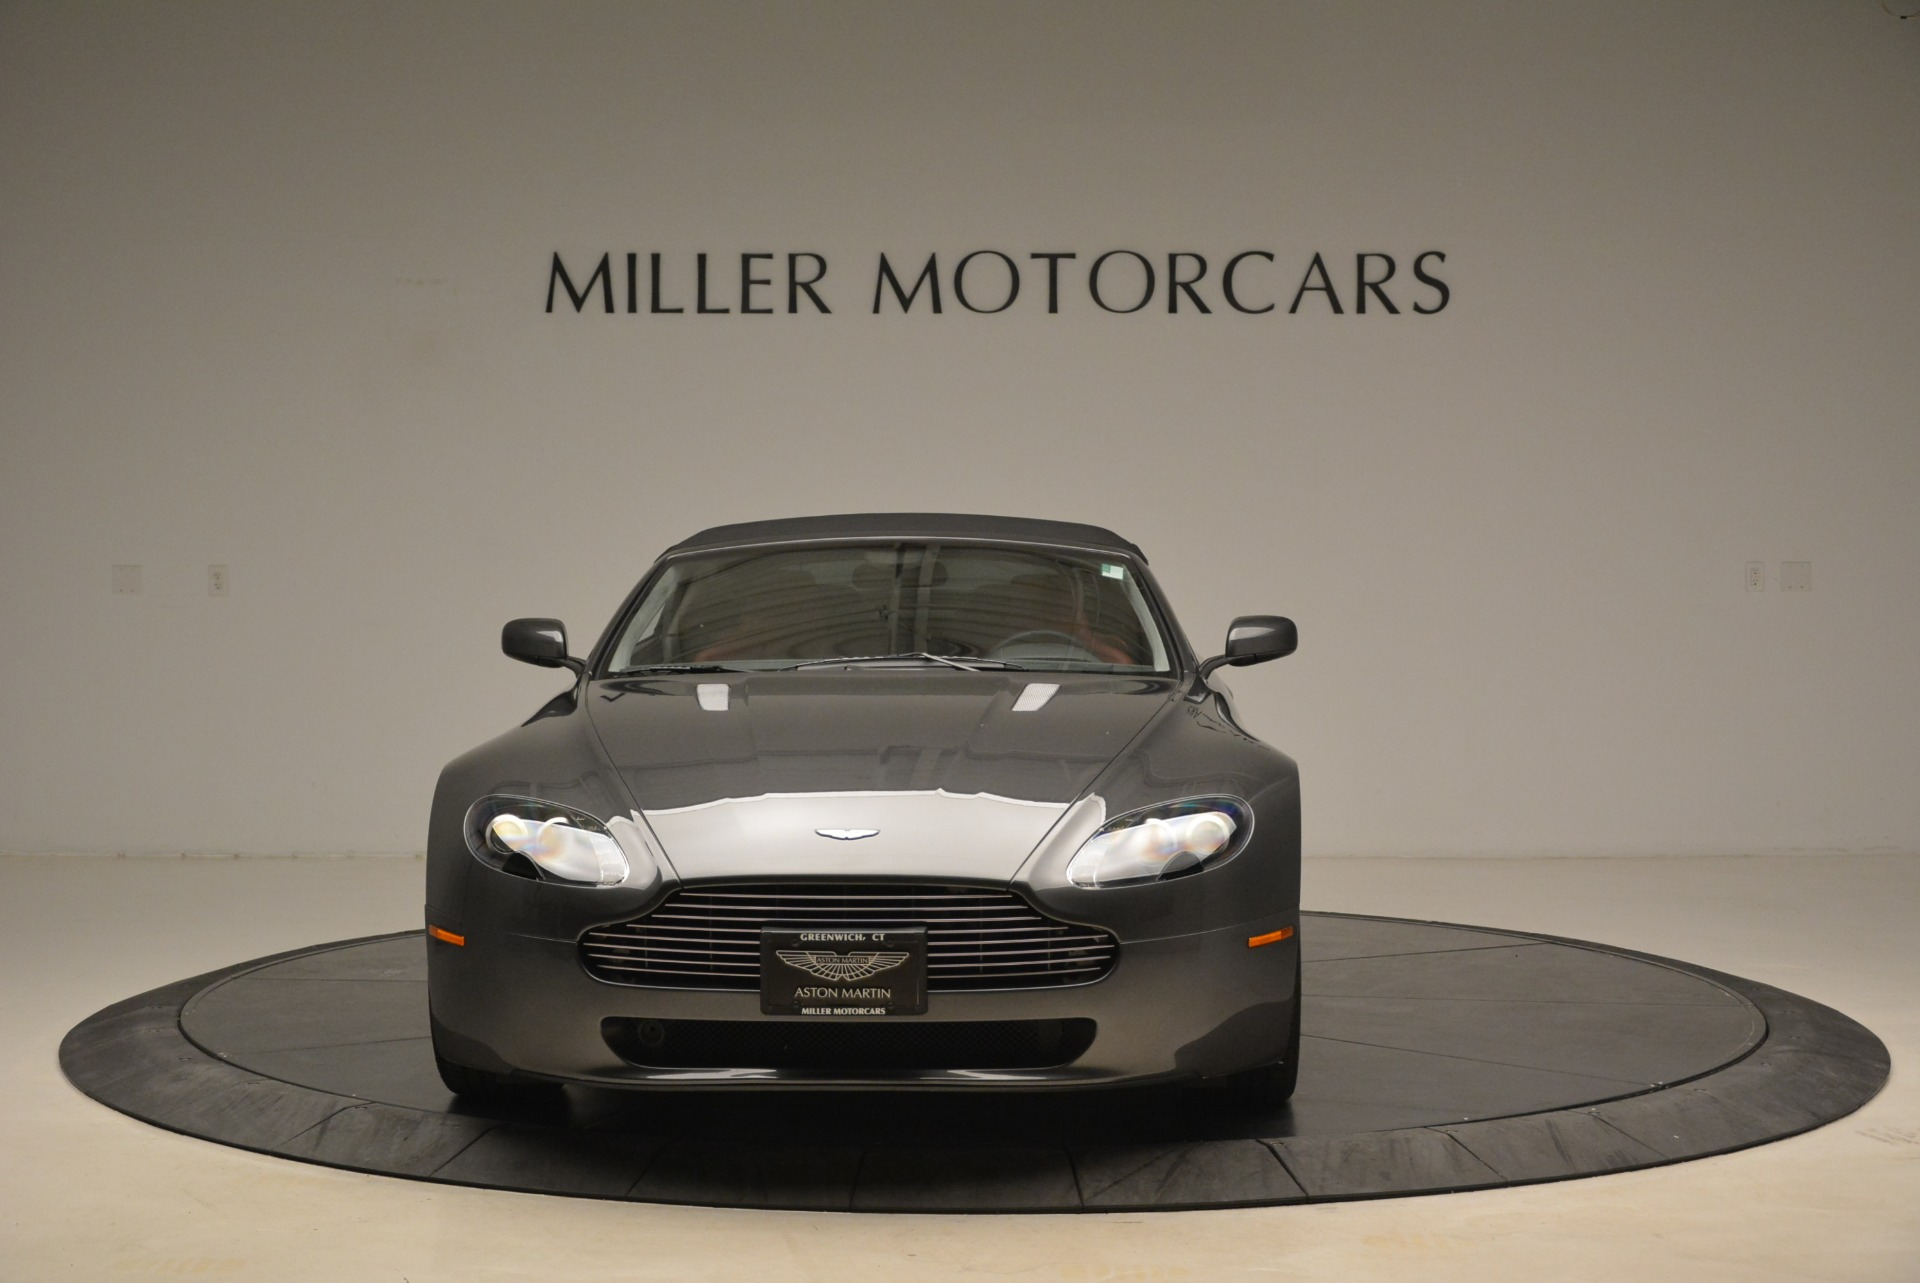 Used 2009 Aston Martin V8 Vantage Roadster For Sale In Greenwich, CT 2123_p24